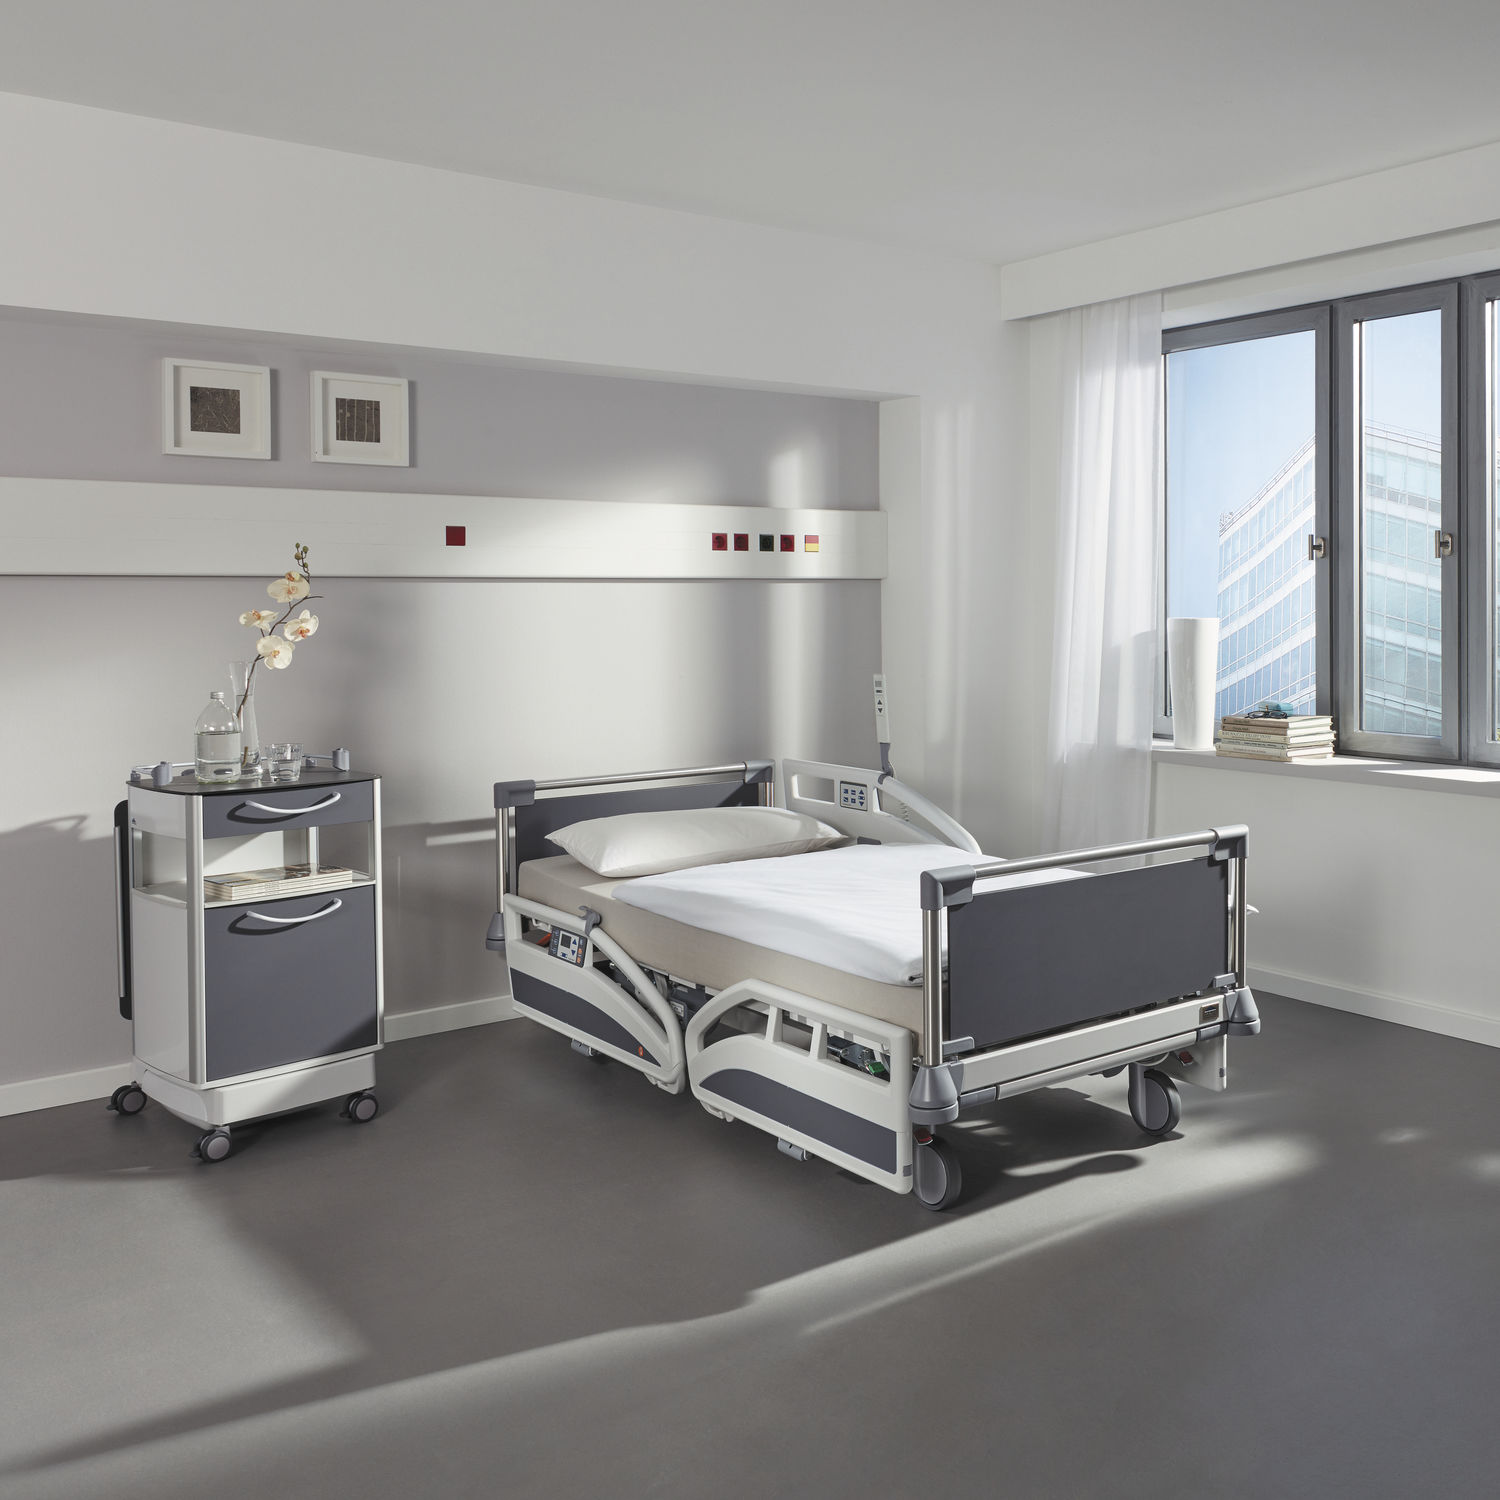 Hospital bed - Evario - Stiegelmeyer GmbH & Co. KG - electric /  height-adjustable / Trendelenburg